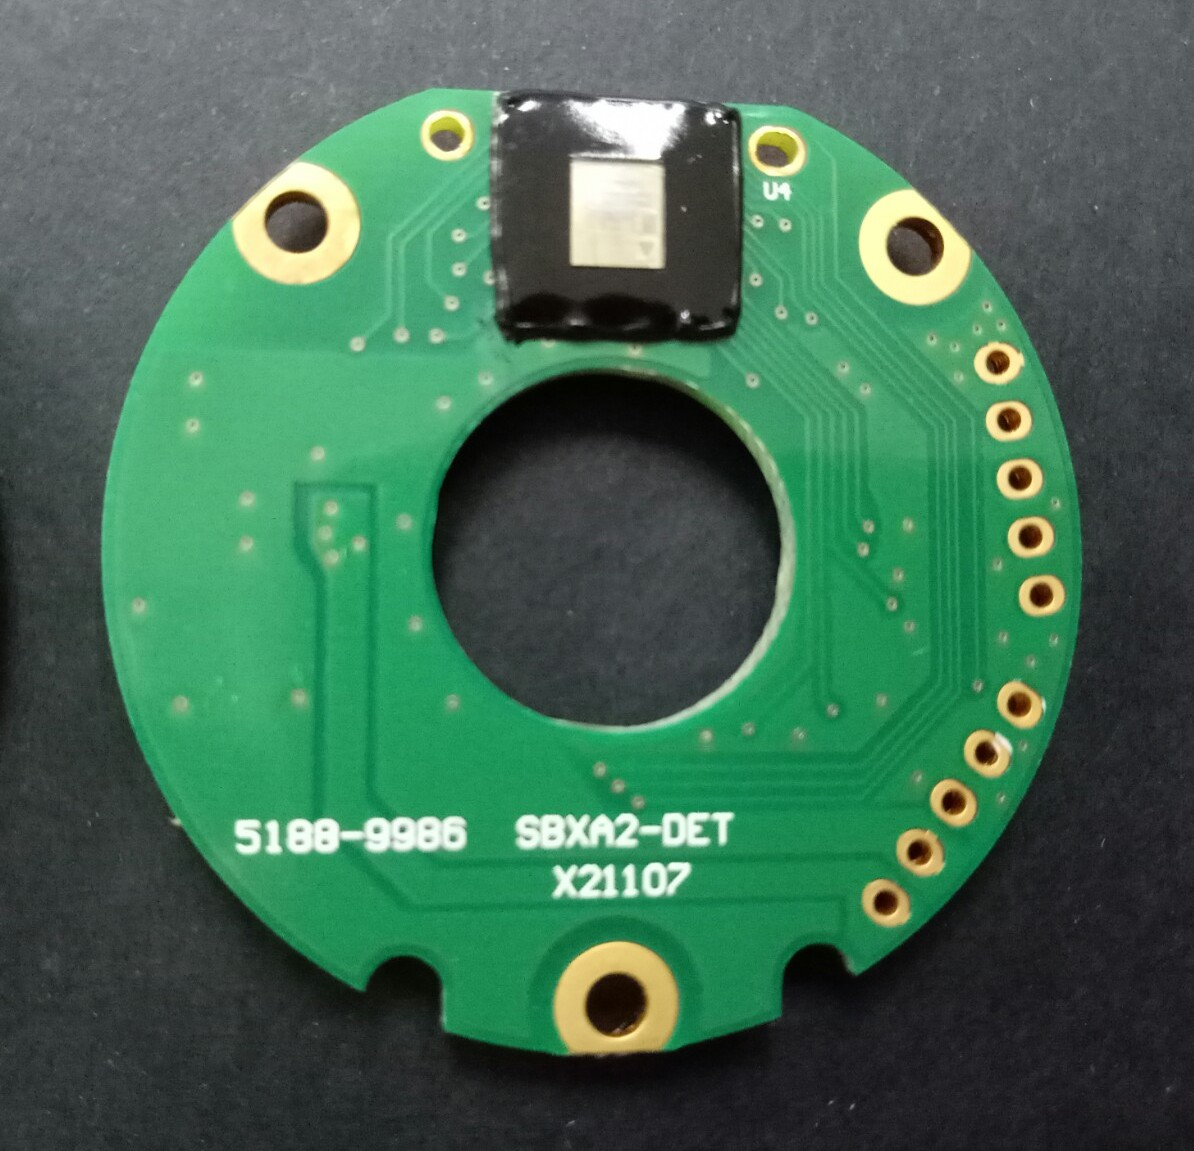 Electronics Circuit Board Coating It Is A One Component Solvent Based Air Dried System Has Fluorescent Agent For Easy Inspection Under Uv Light